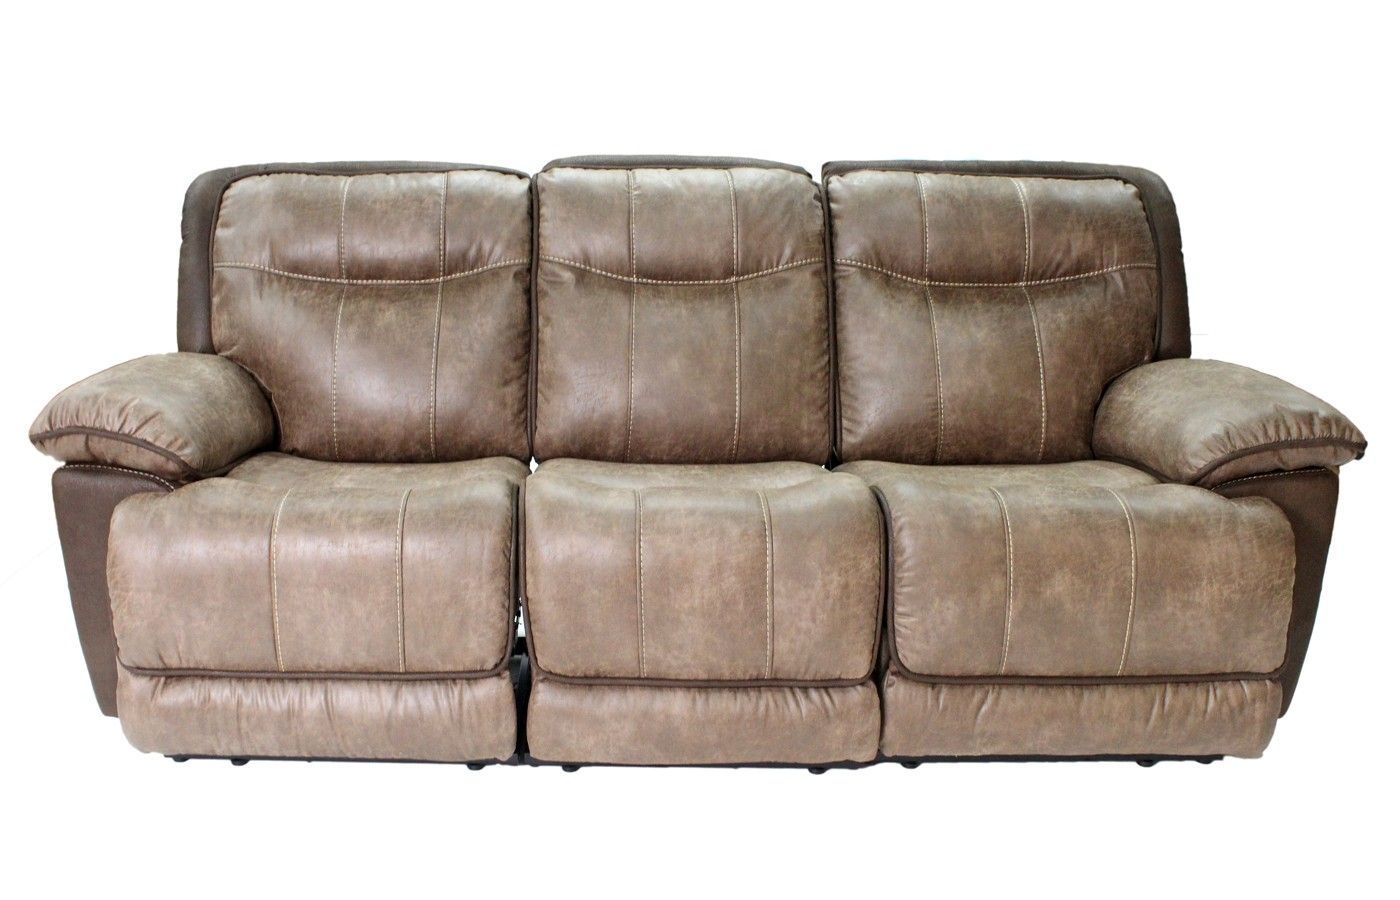 mor furniture for less the bubba reclining living room mor furniture for less